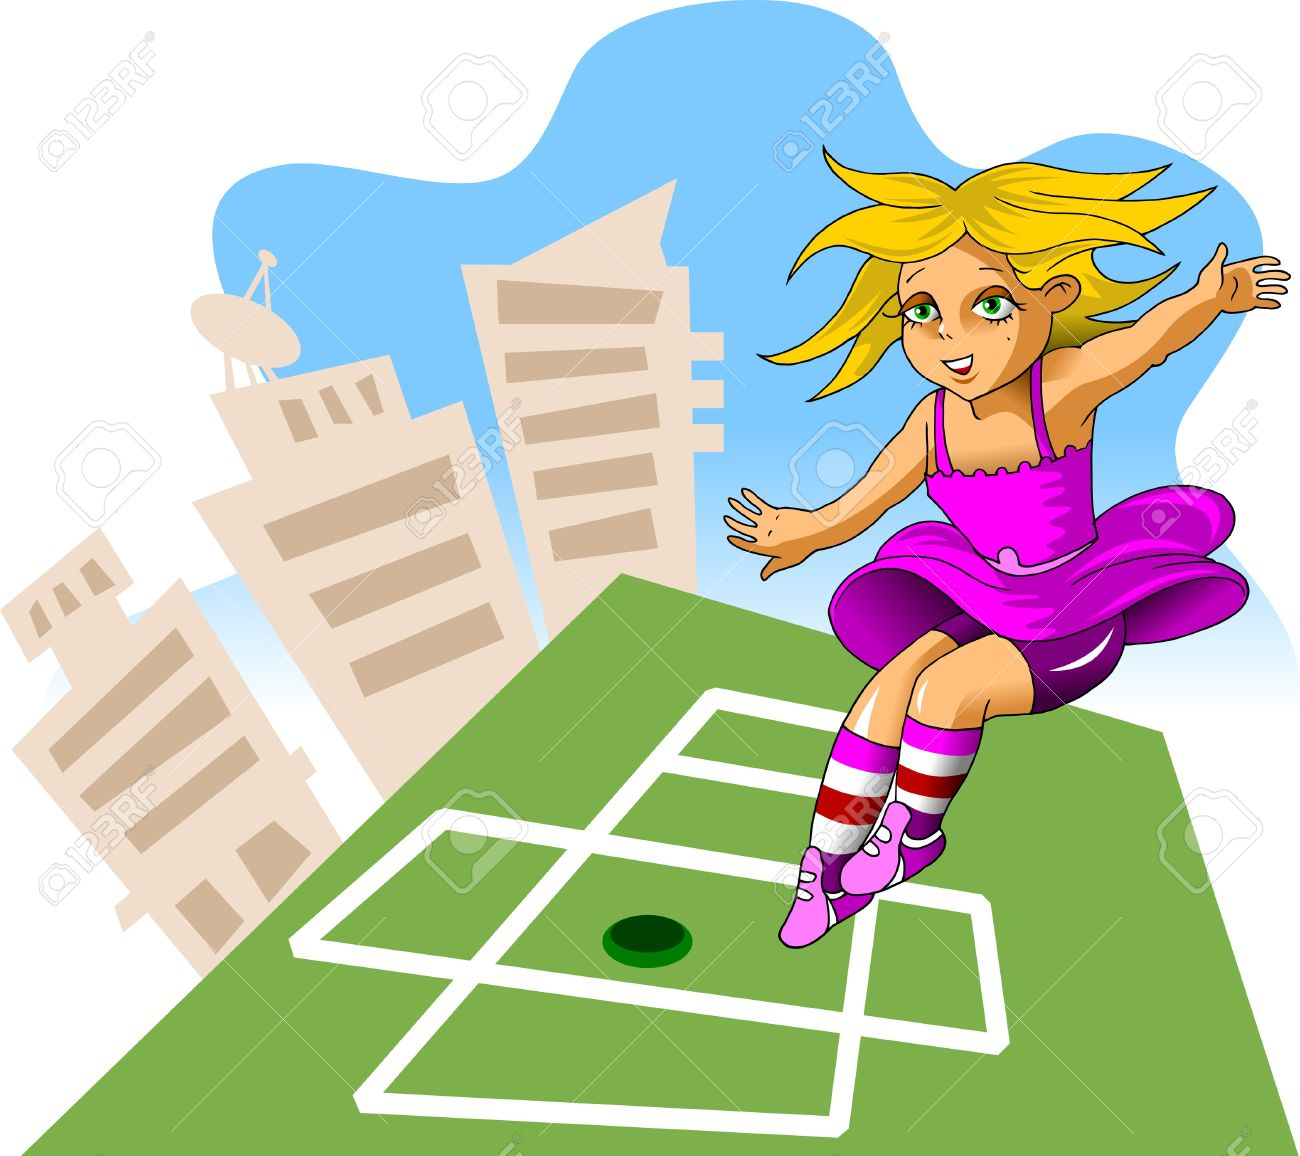 girl playing hopscotch on the green area Stock Vector - 10416677